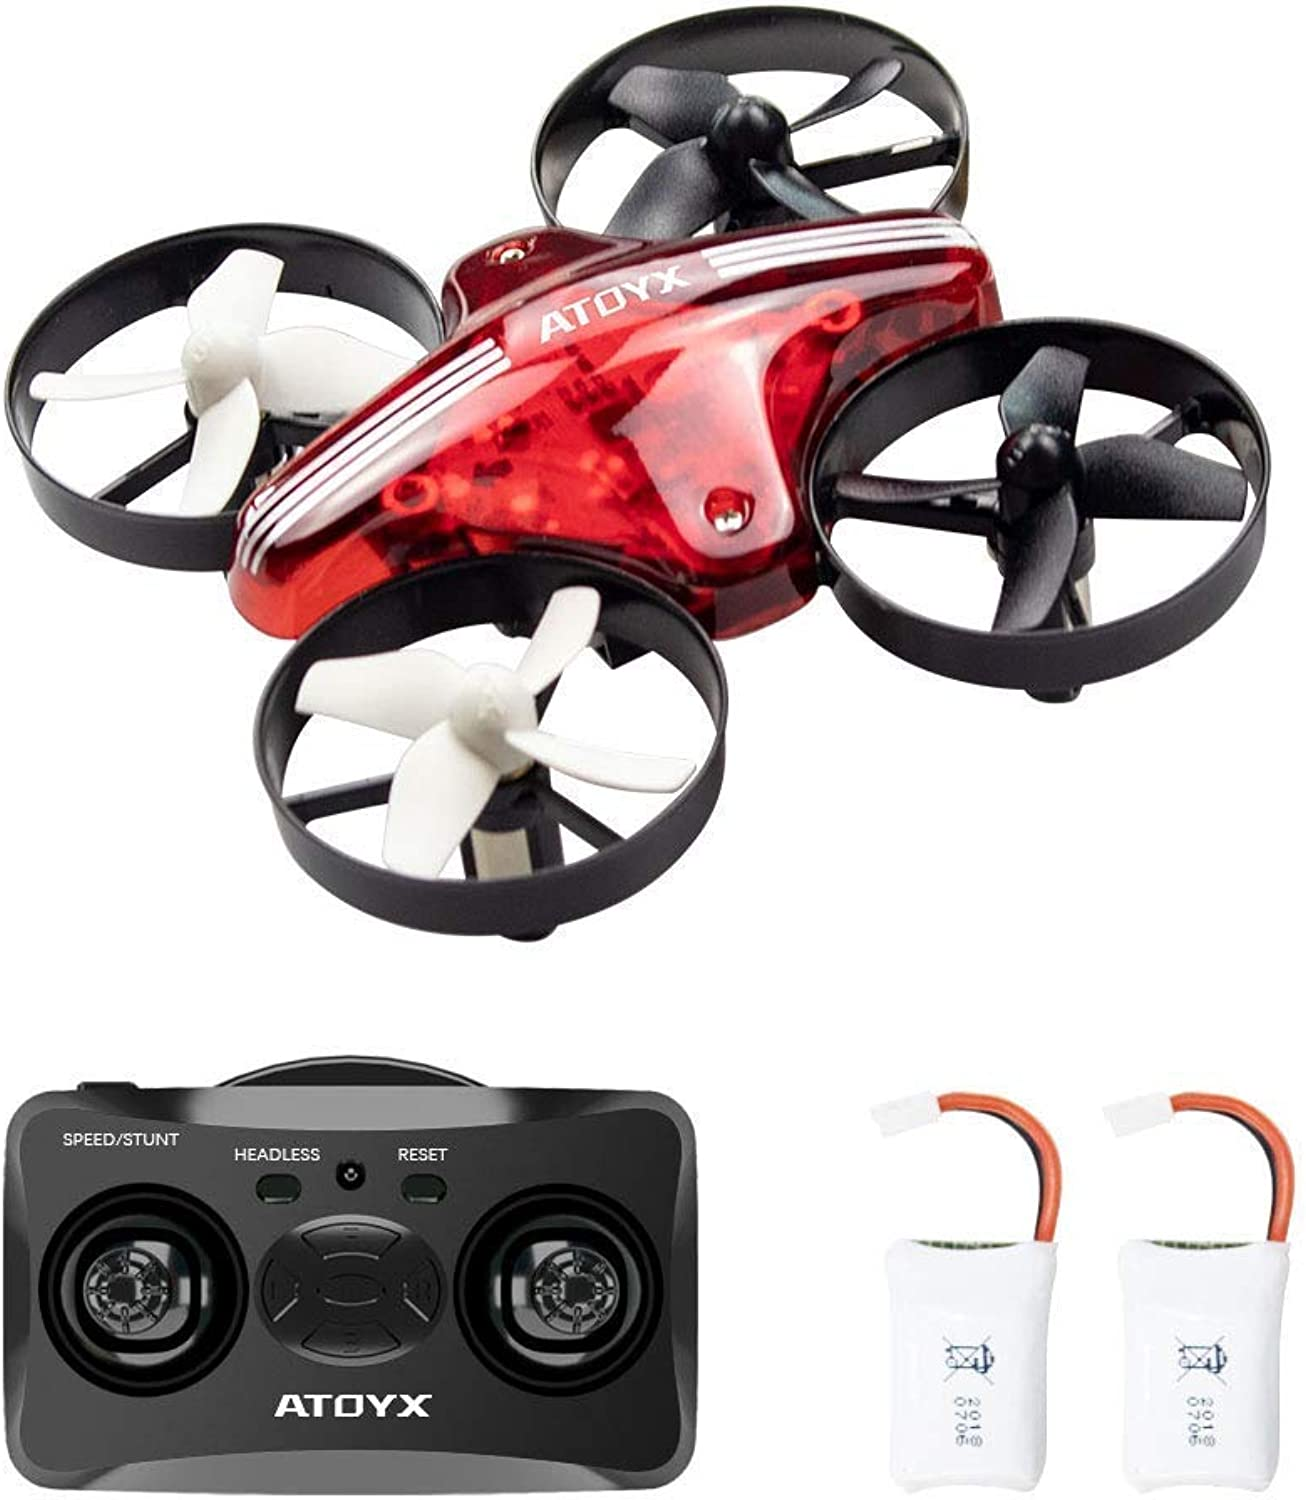 ATOYX AT66 Mini Drones, Quadcopter Auto Hovering Headless Mode 3D Flips 3 Speeds Helicopter RC Plane Toy with Bonus Batteries Drone for Kids Beginners (Red)